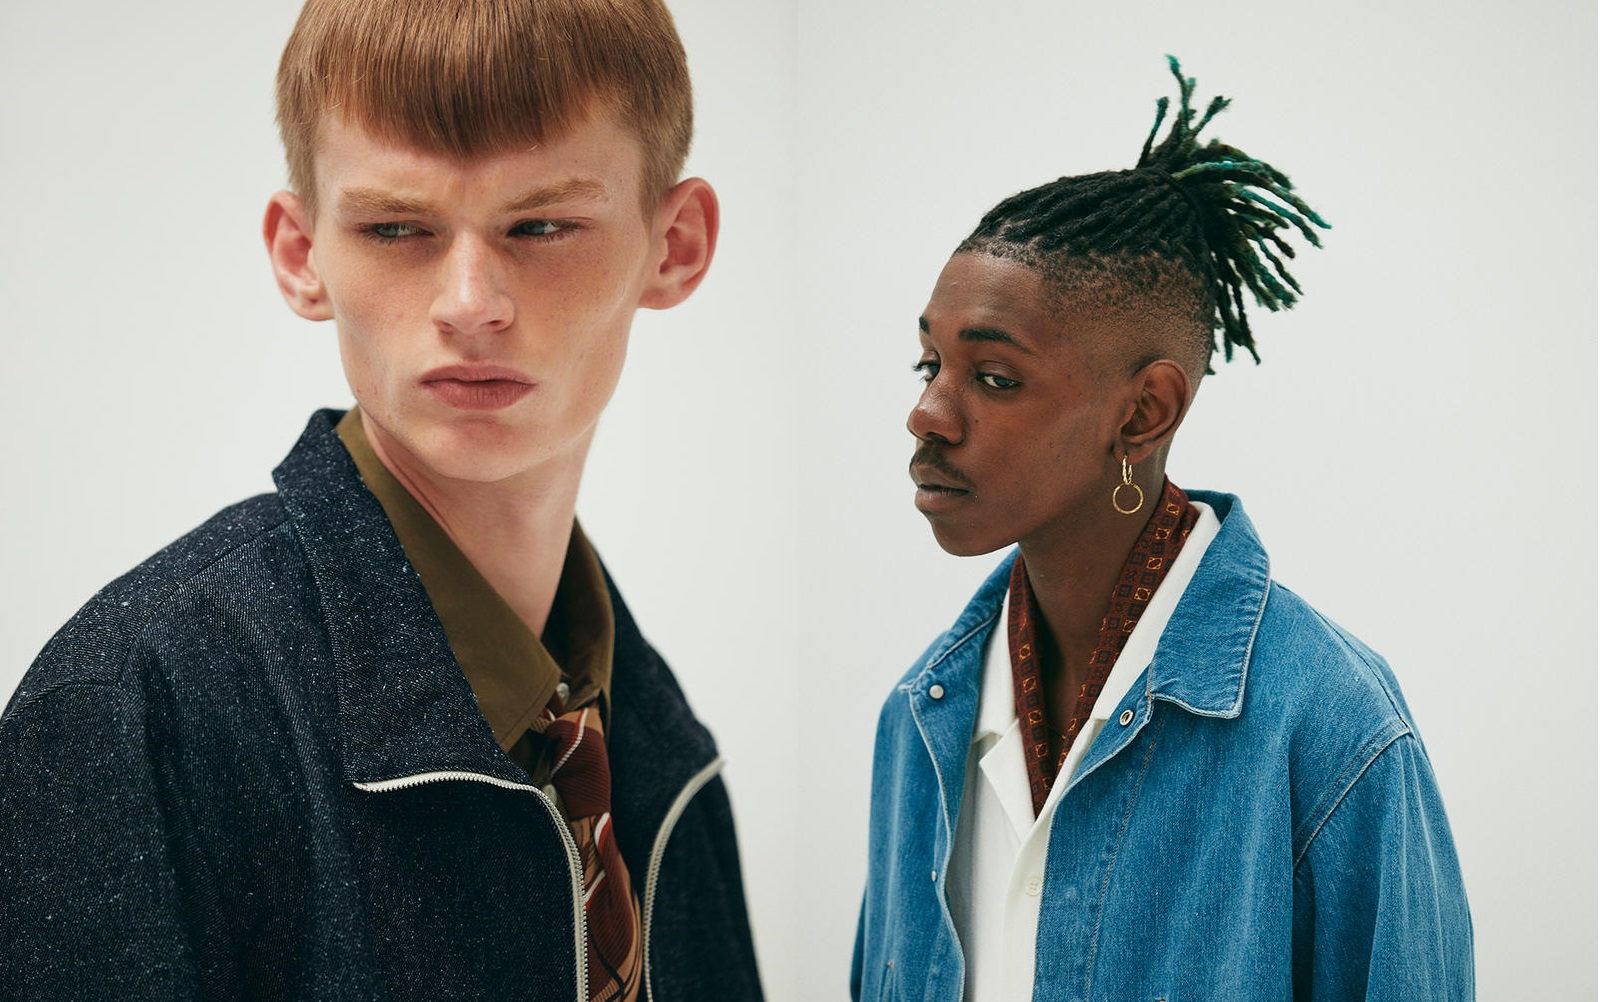 Bukht Reveals Imagery of Its Elegant Spring/Summer 2019 Collection